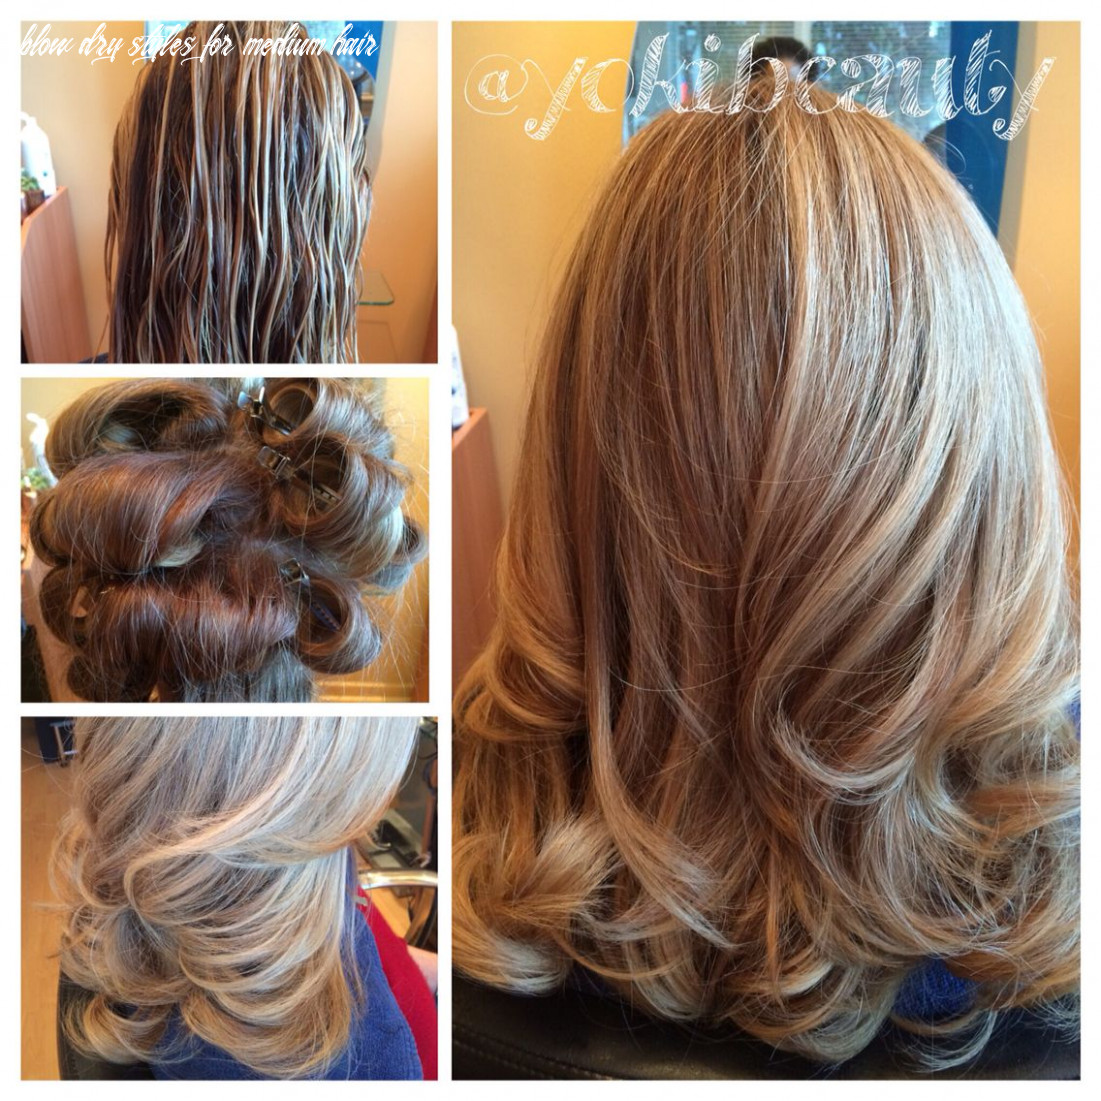 Before and after pin curl as you blowdry let hair while in pin